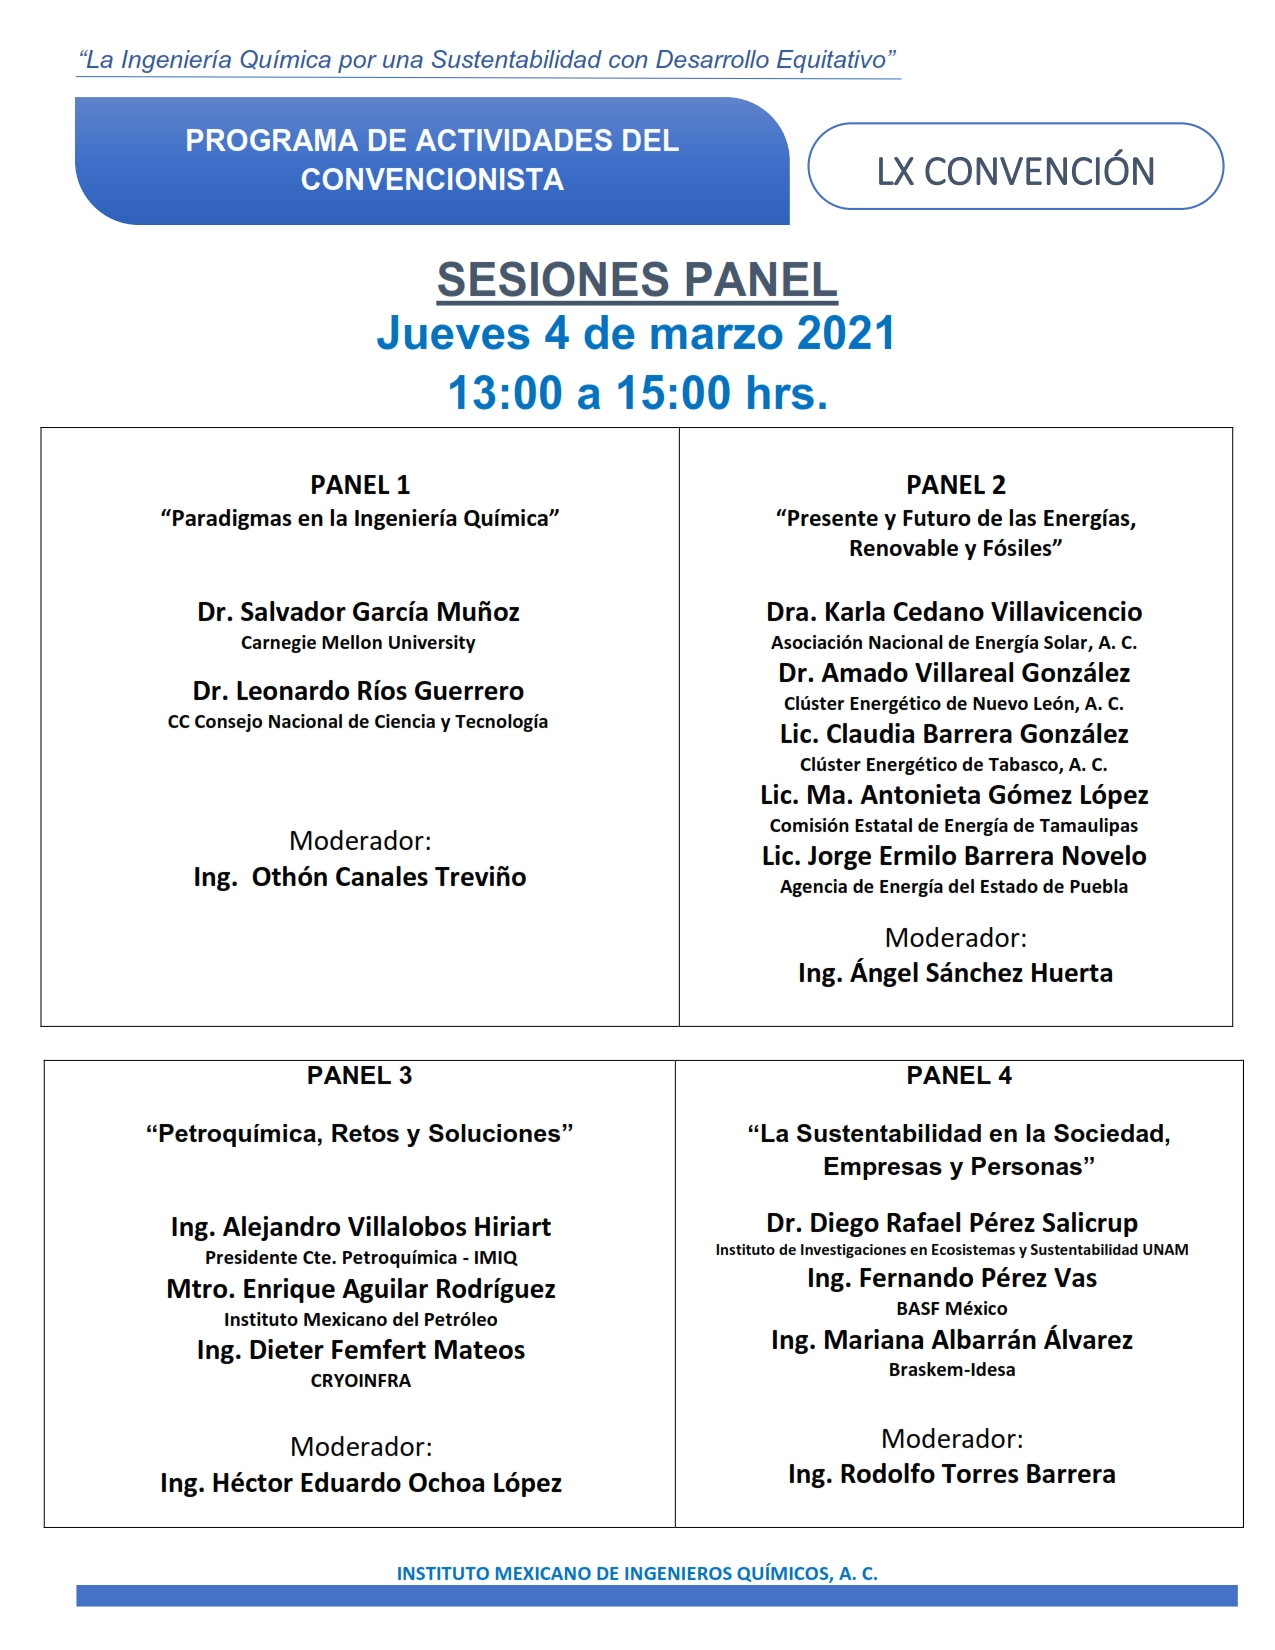 SESION PANEL JUEVES